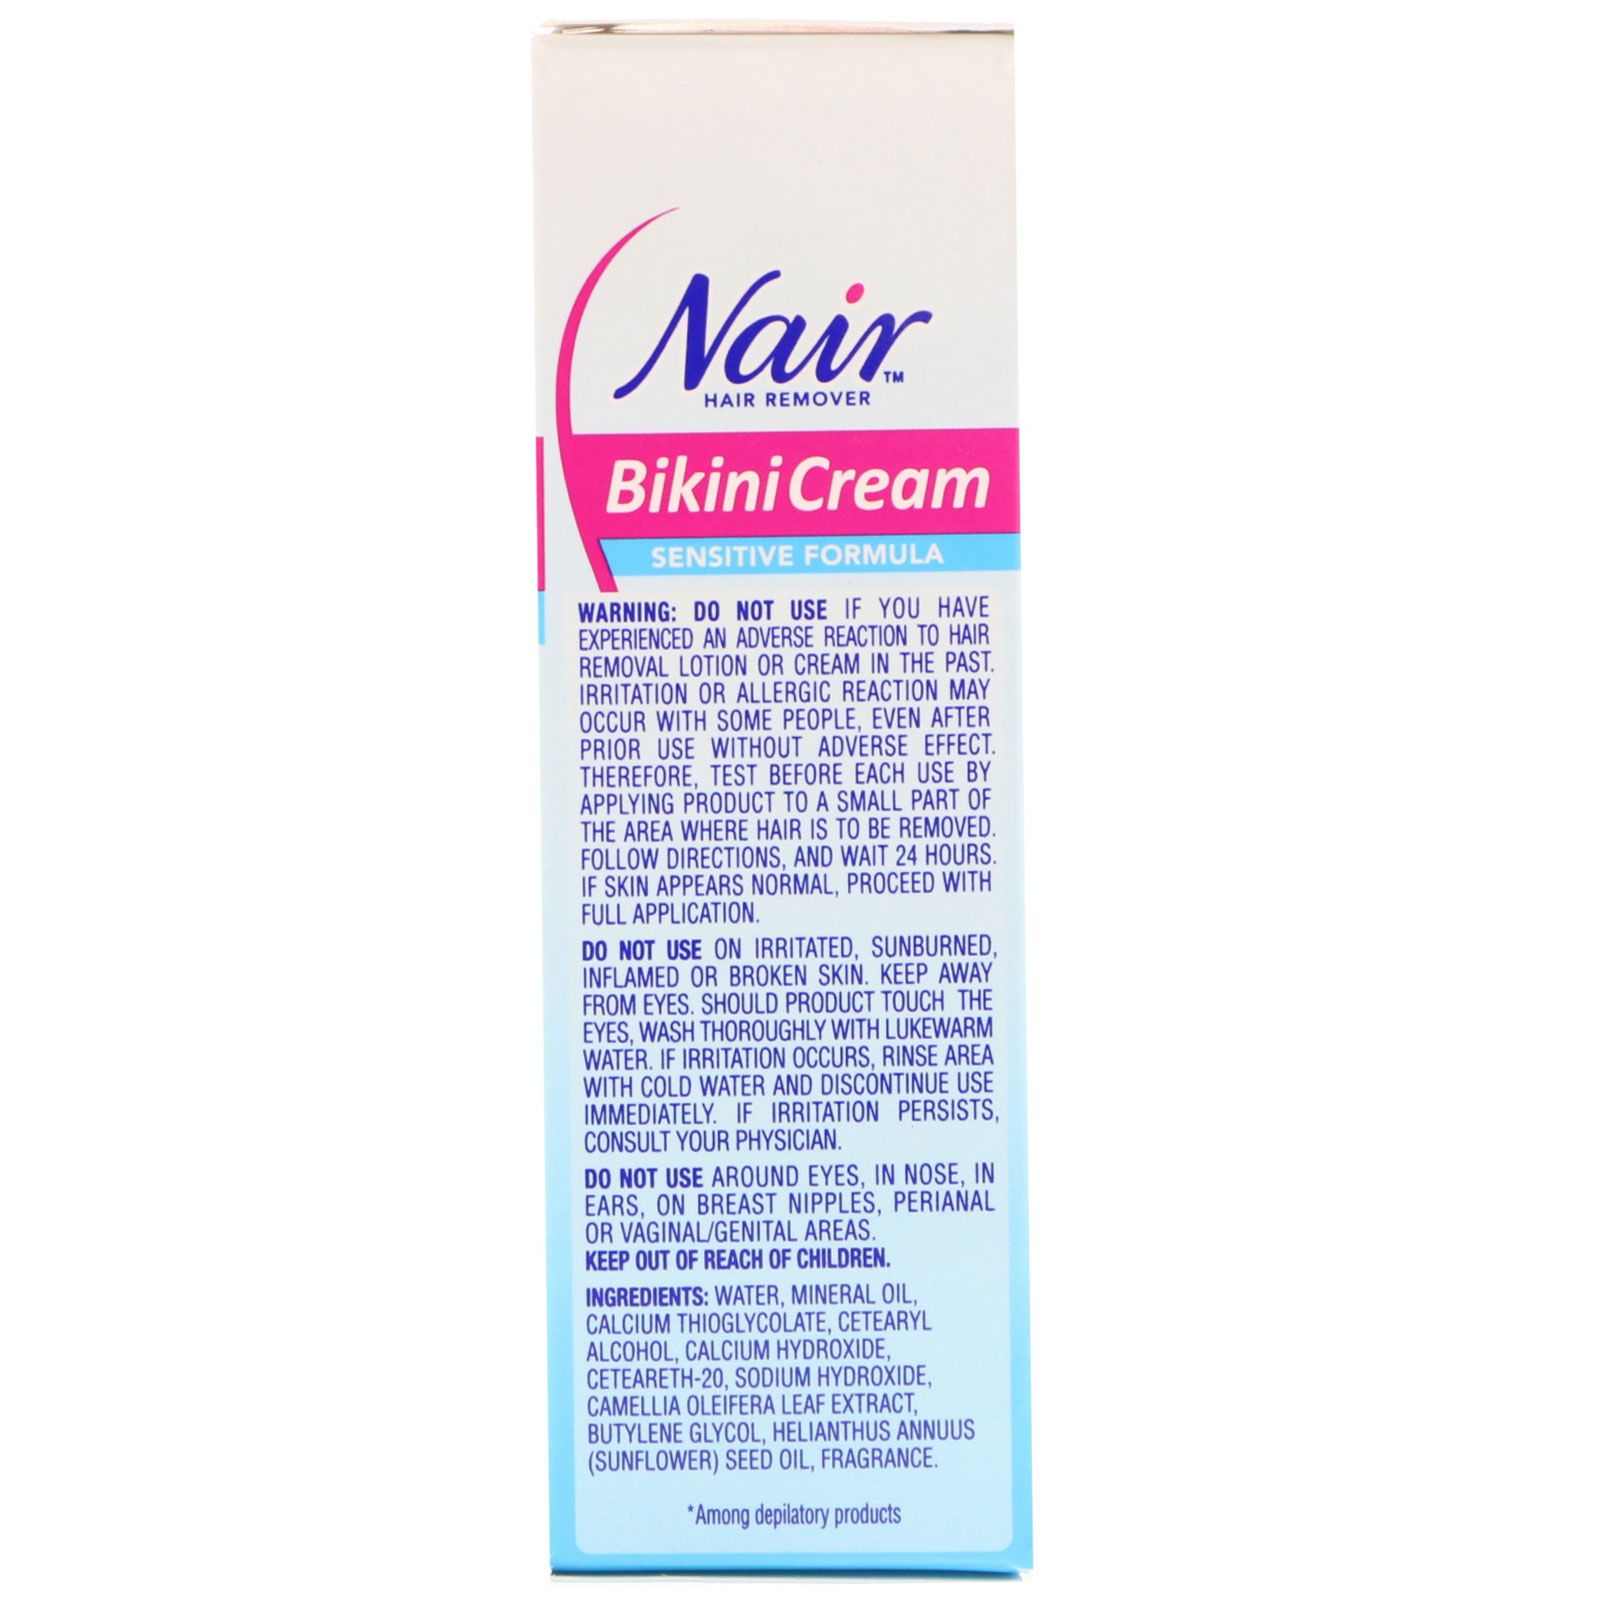 Nair Hair Remover Bikini Cream Sensitive Formula With Green